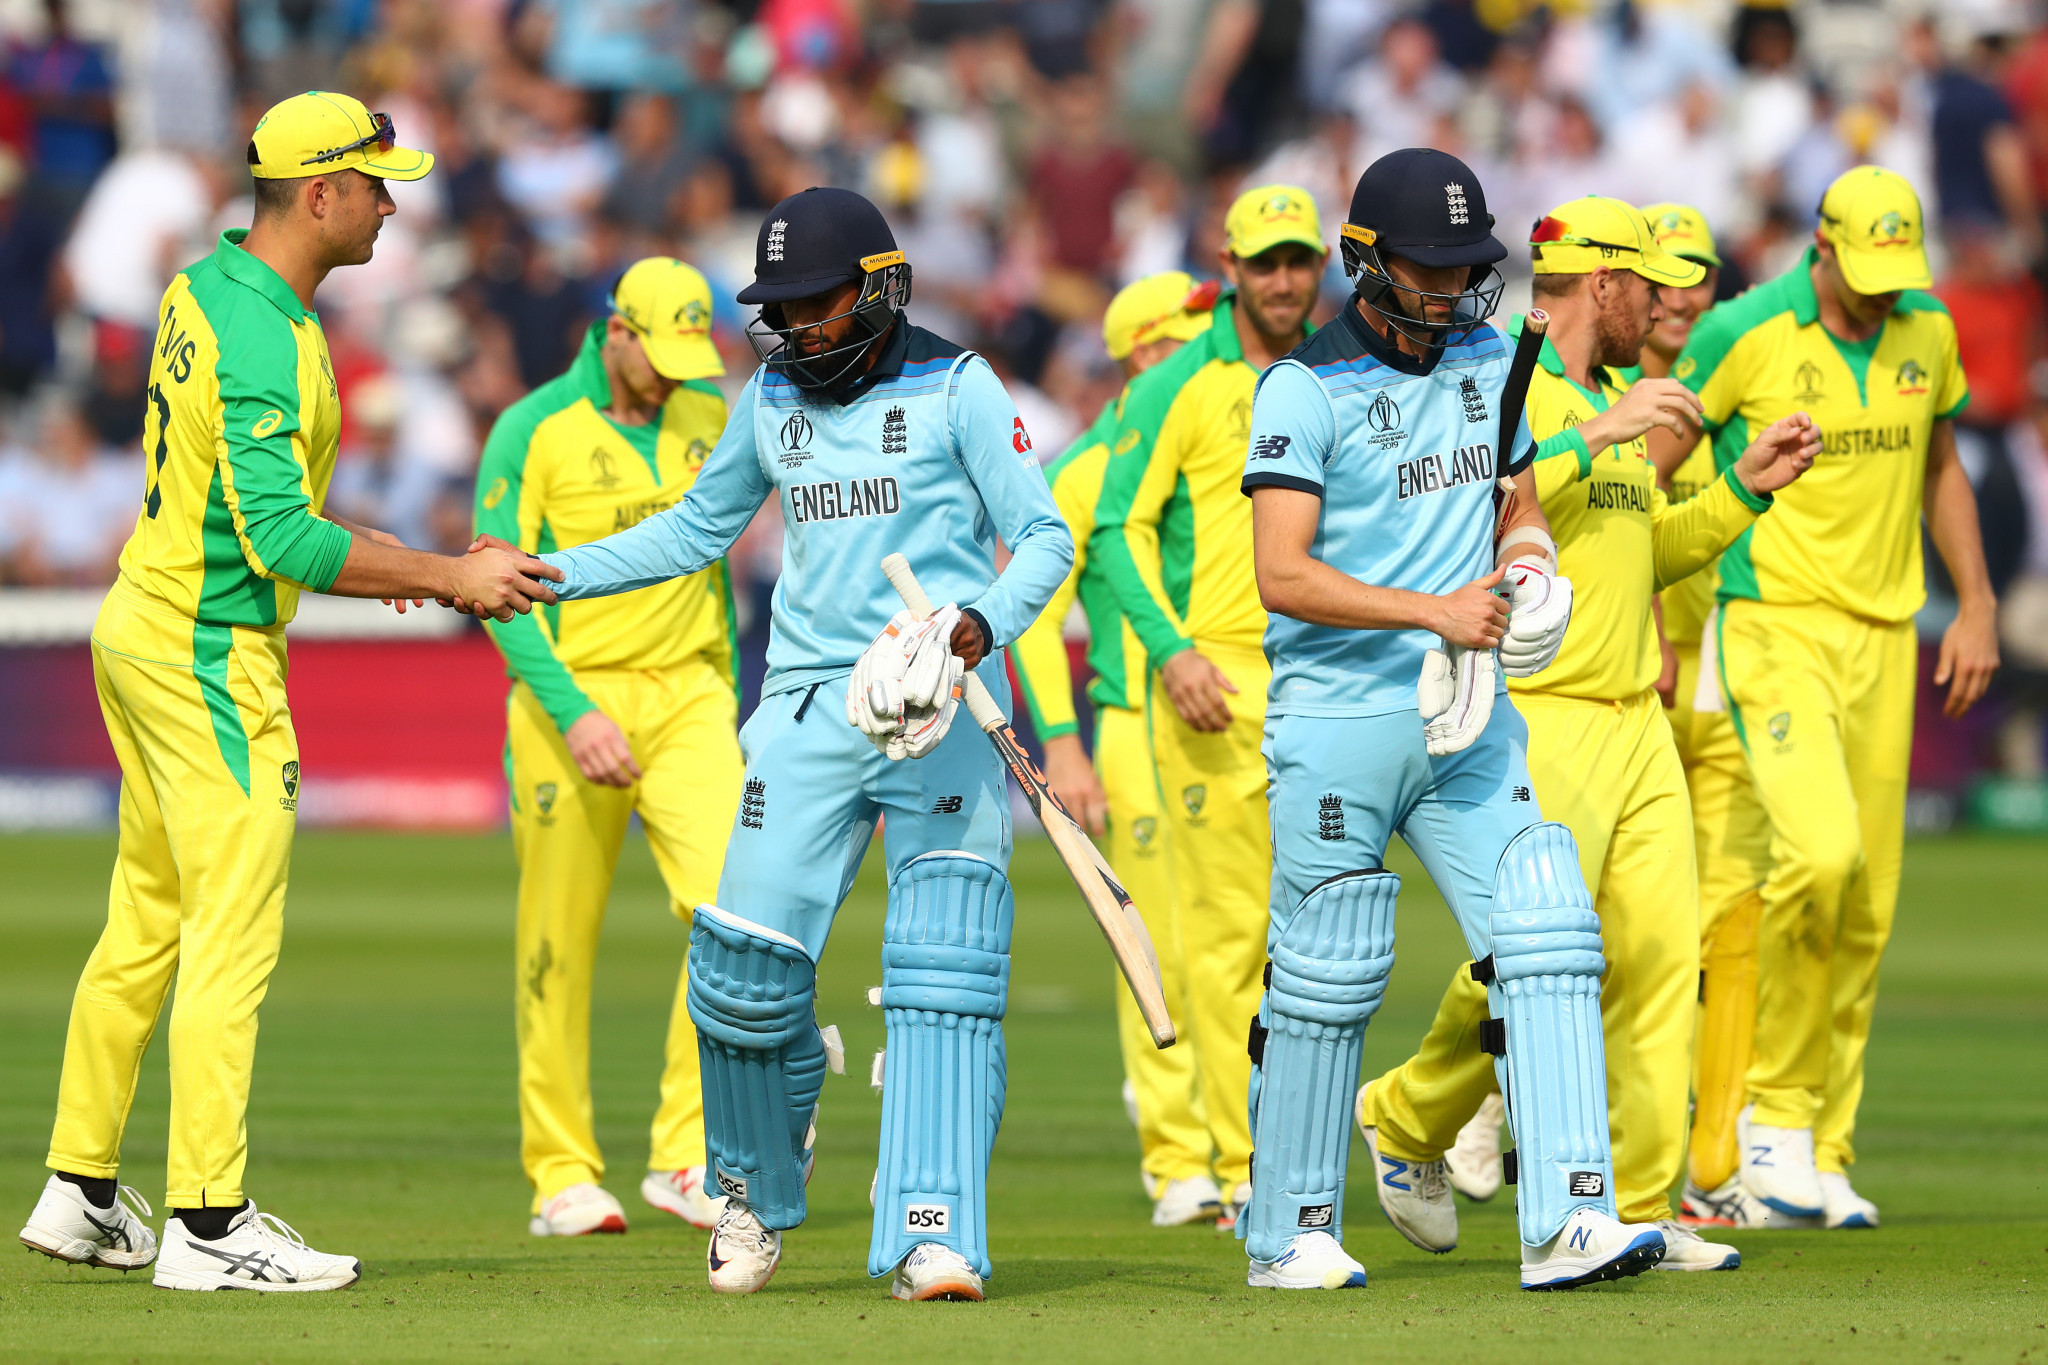 Hosts England suffer damaging defeat against Australia at Cricket World Cup